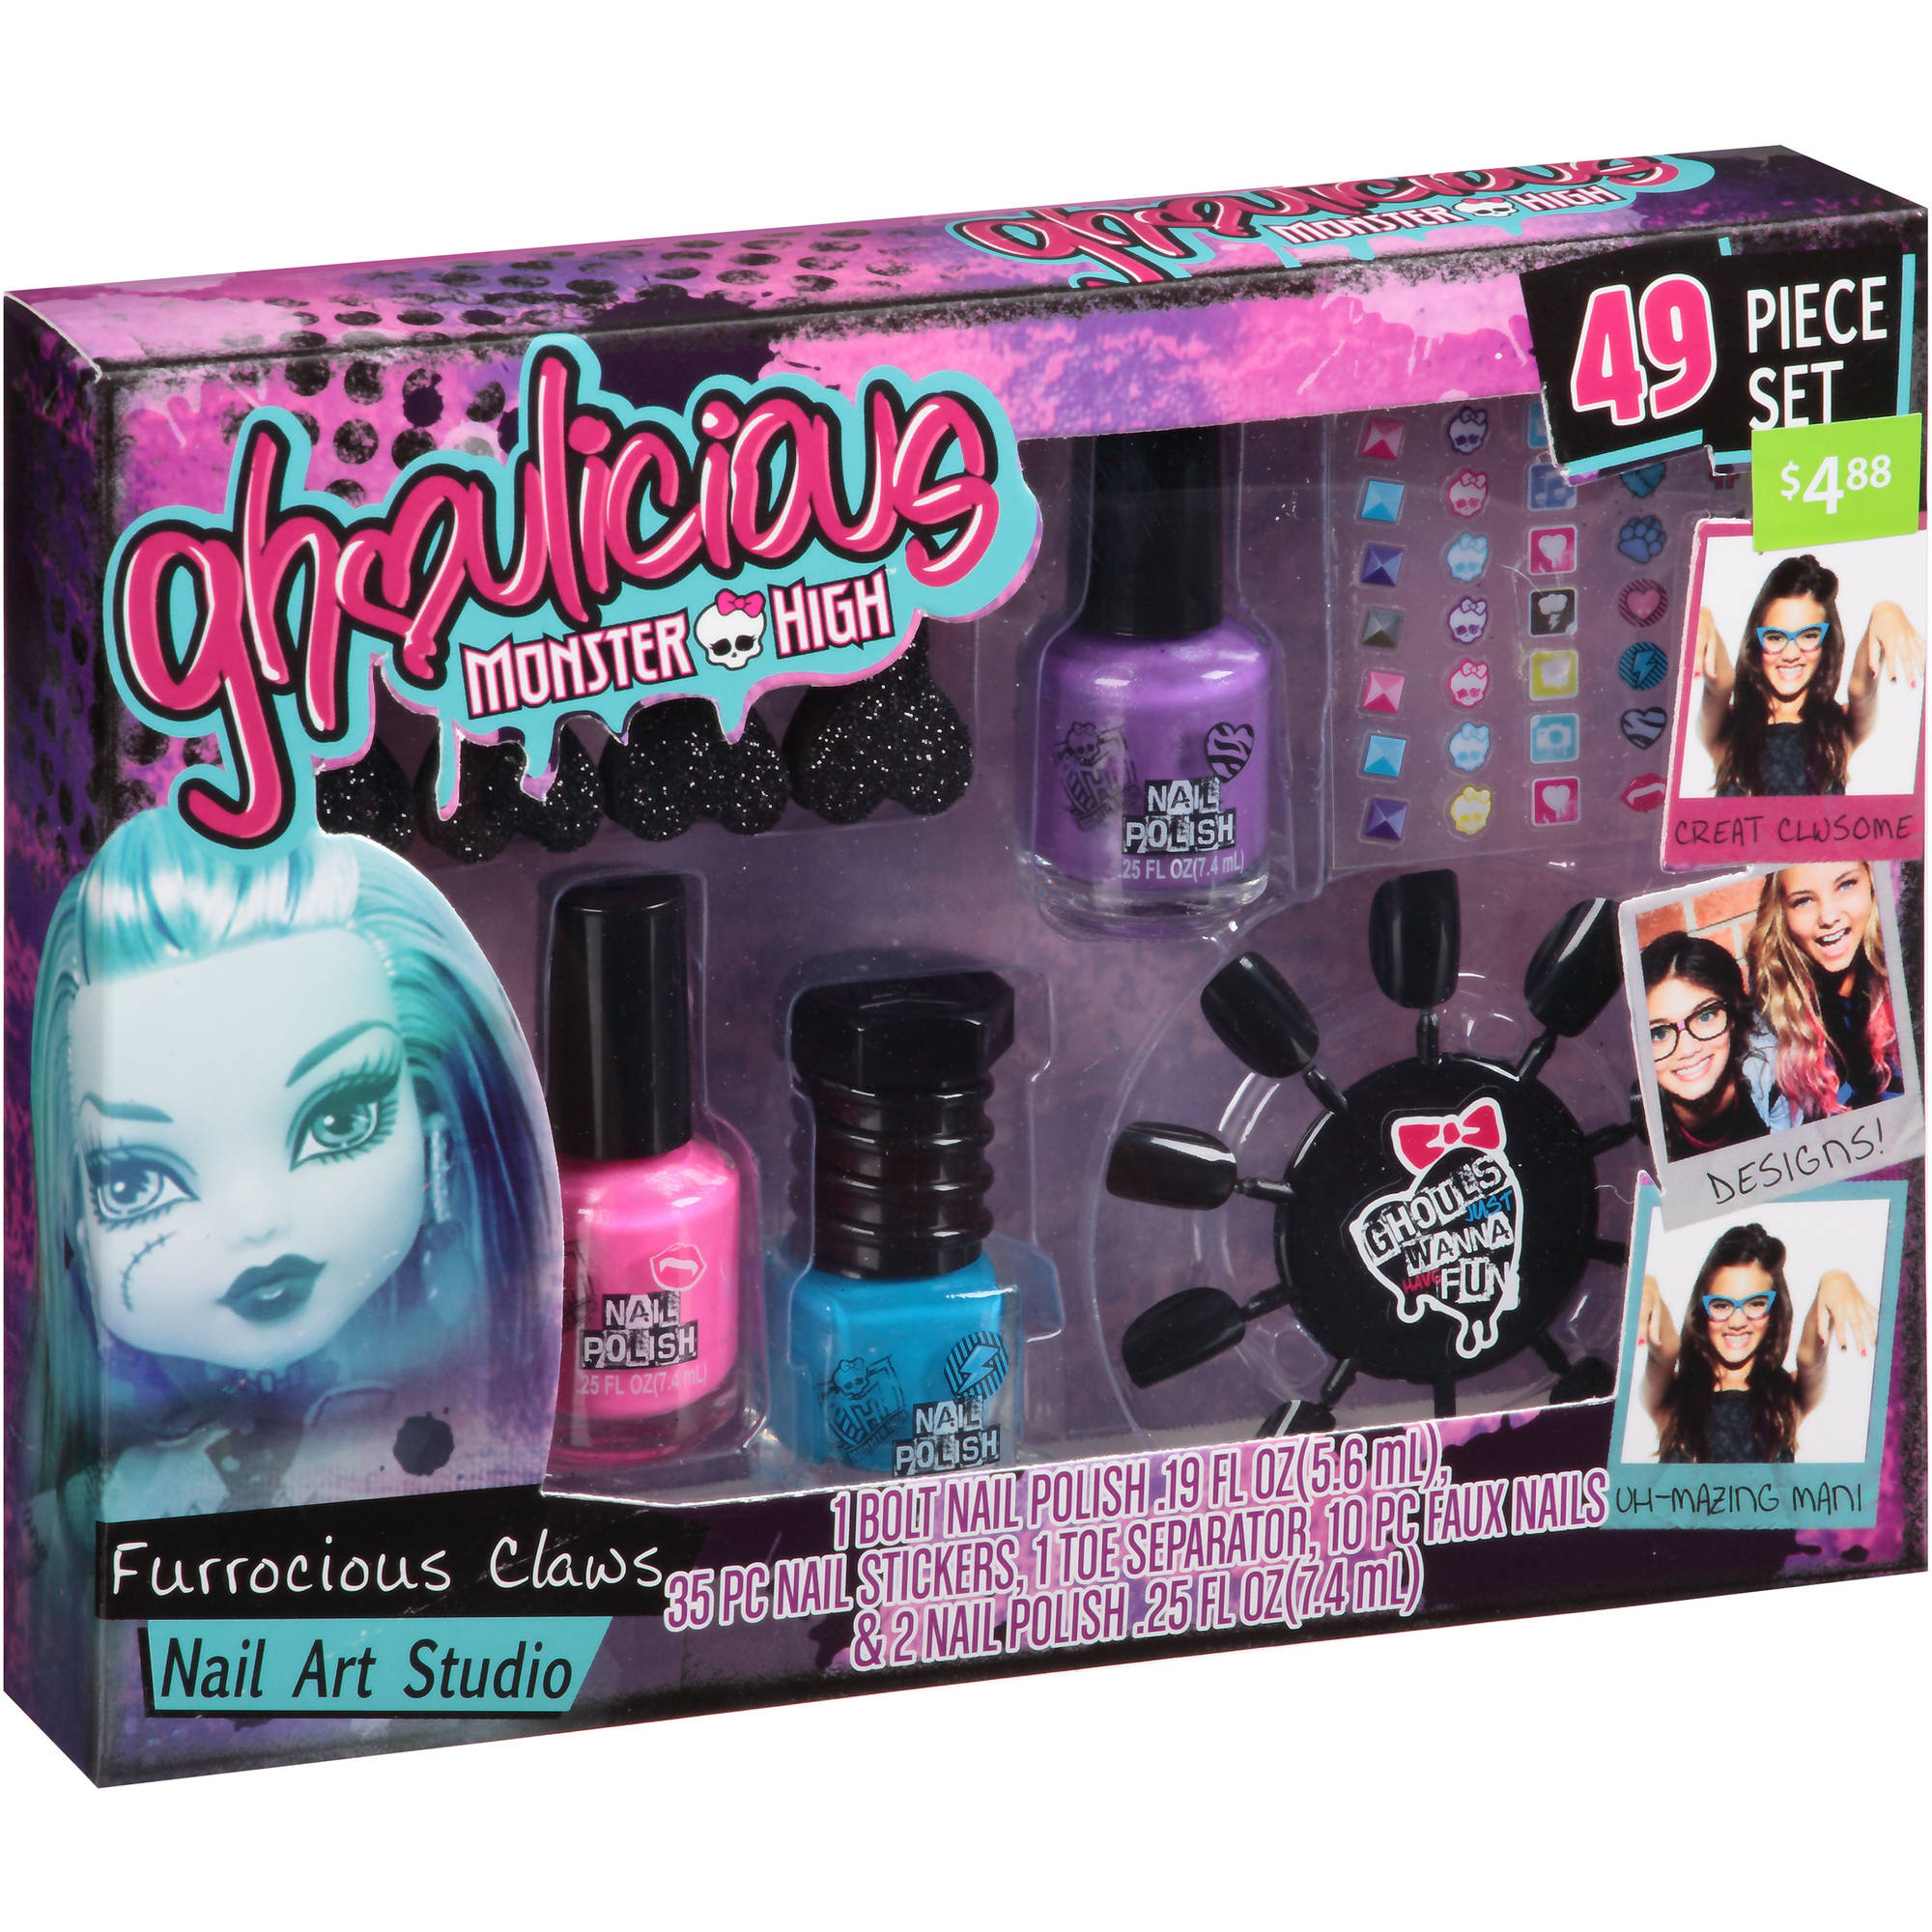 Monster High Ghoulicious Furrocious Claws Nail Art Studio Set, 6 pc ...